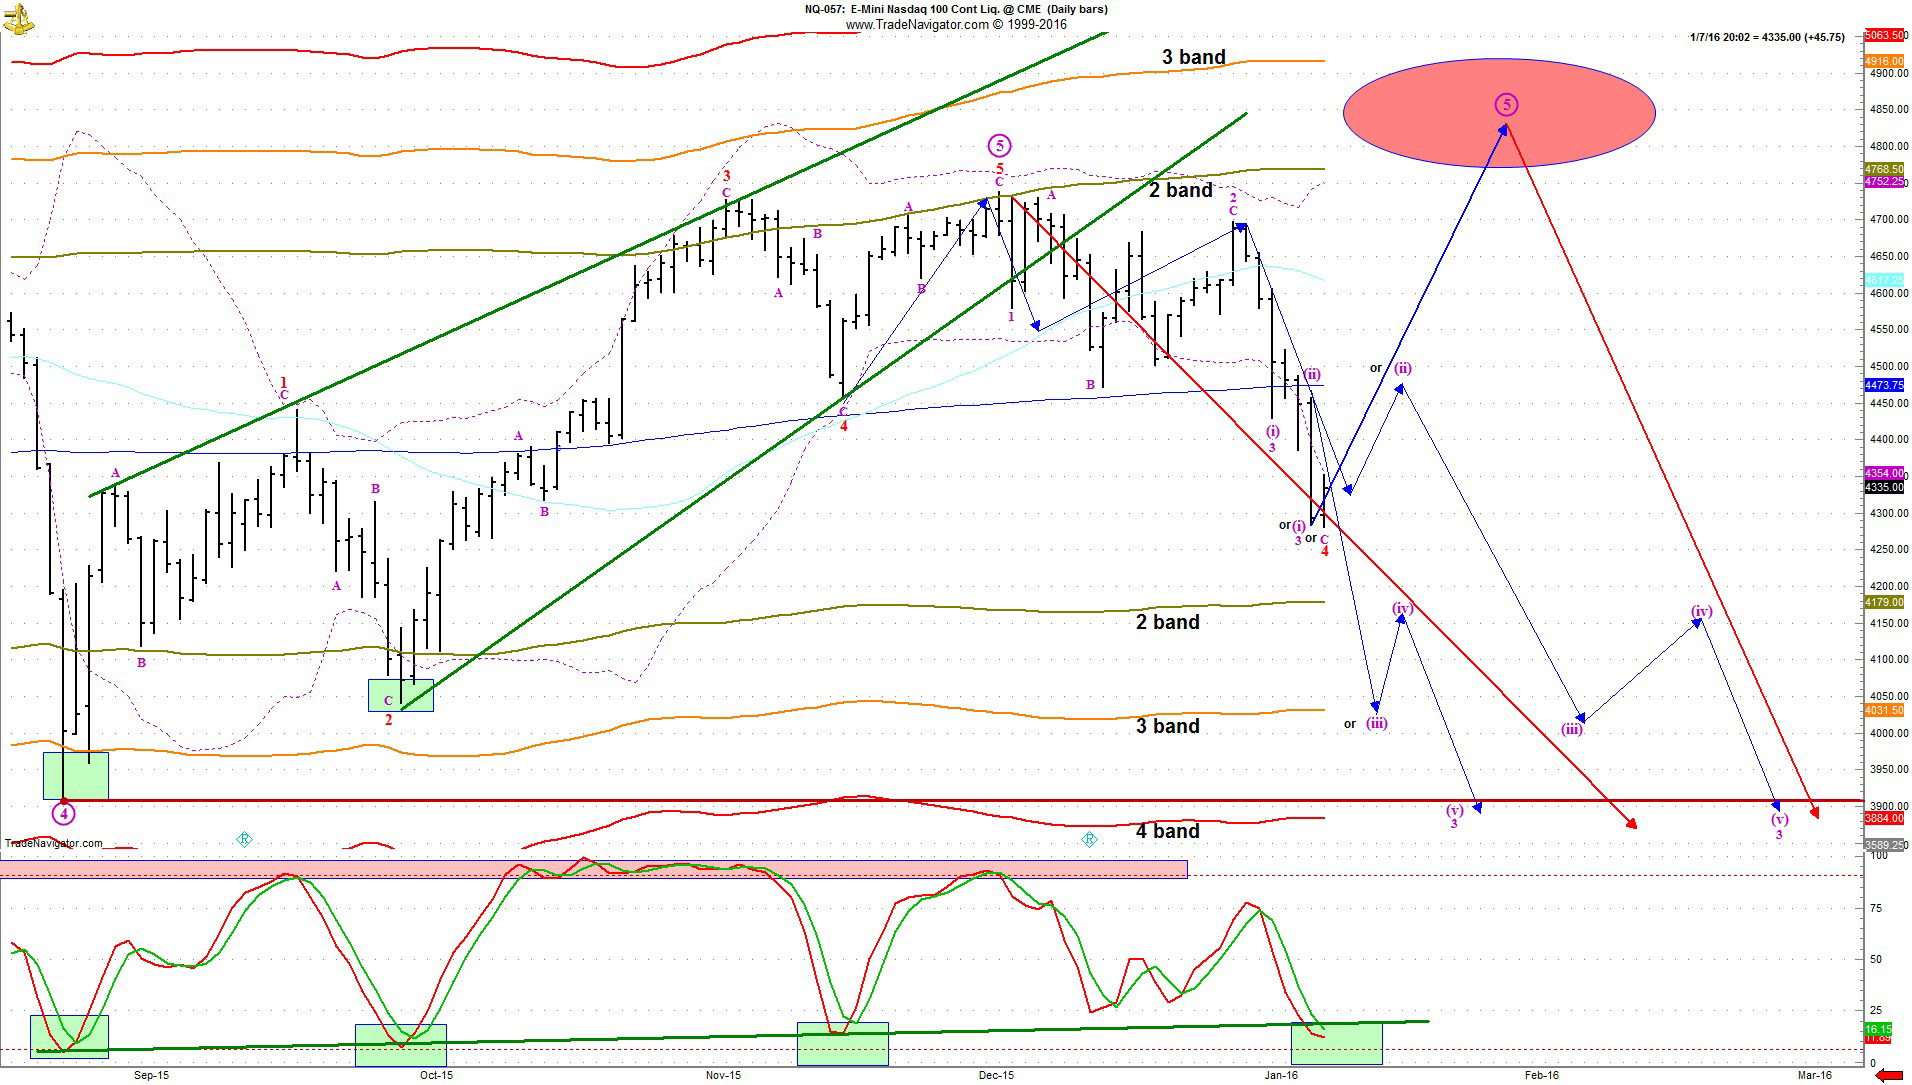 Dow Futures Daily Chart Is The Stock Market Headed For A